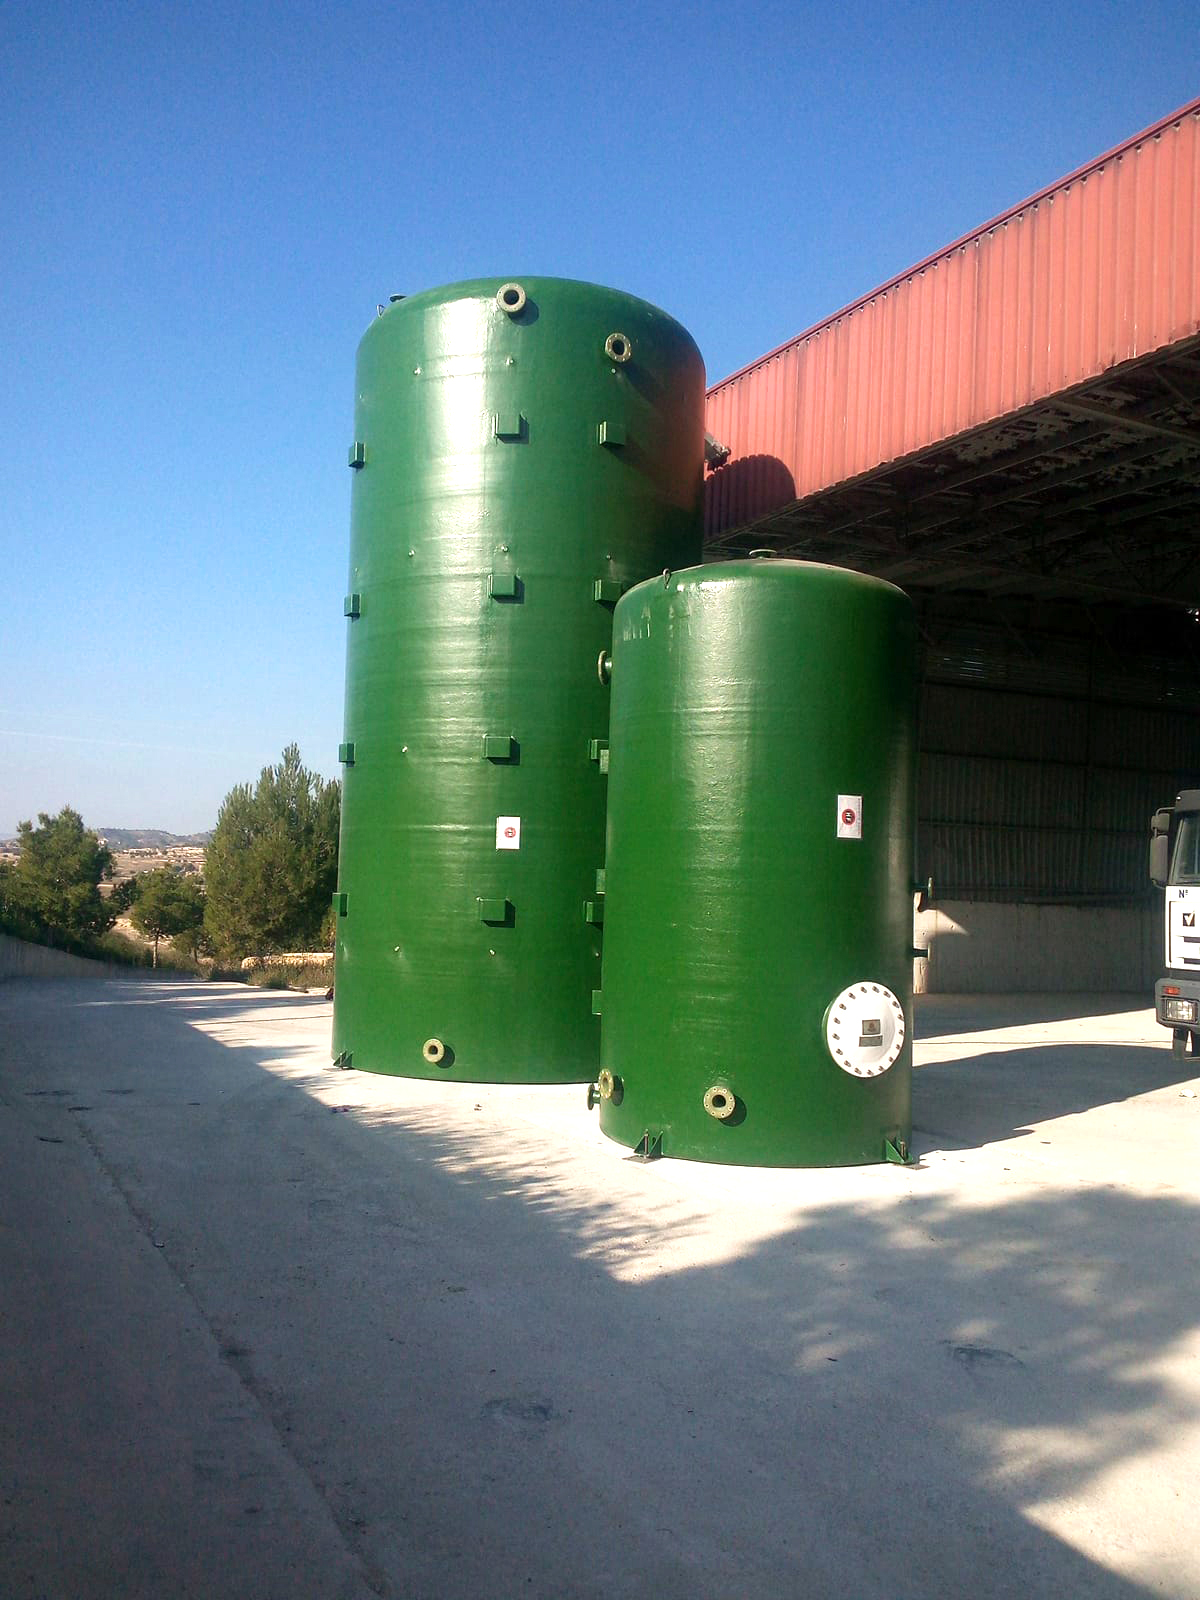 ValueWaste delivery installation tanks ValueWaste entrega instalación tanques 06